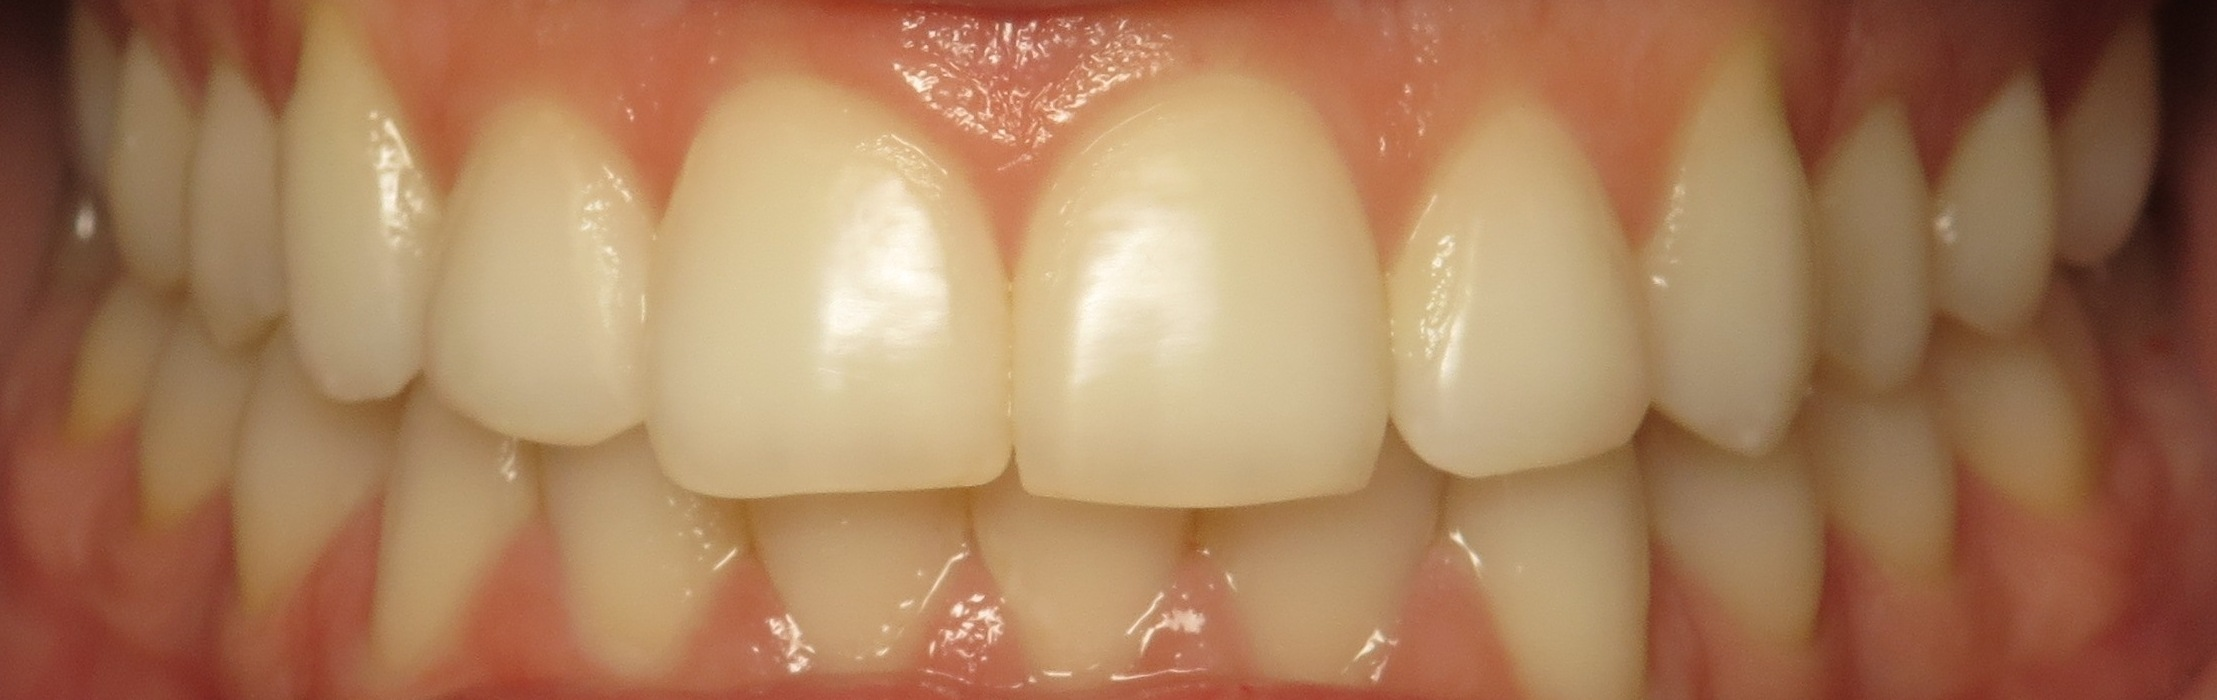 Thousand Oaks Family Dentistry - Golden Proportion Case 3 retracted smile.JPG